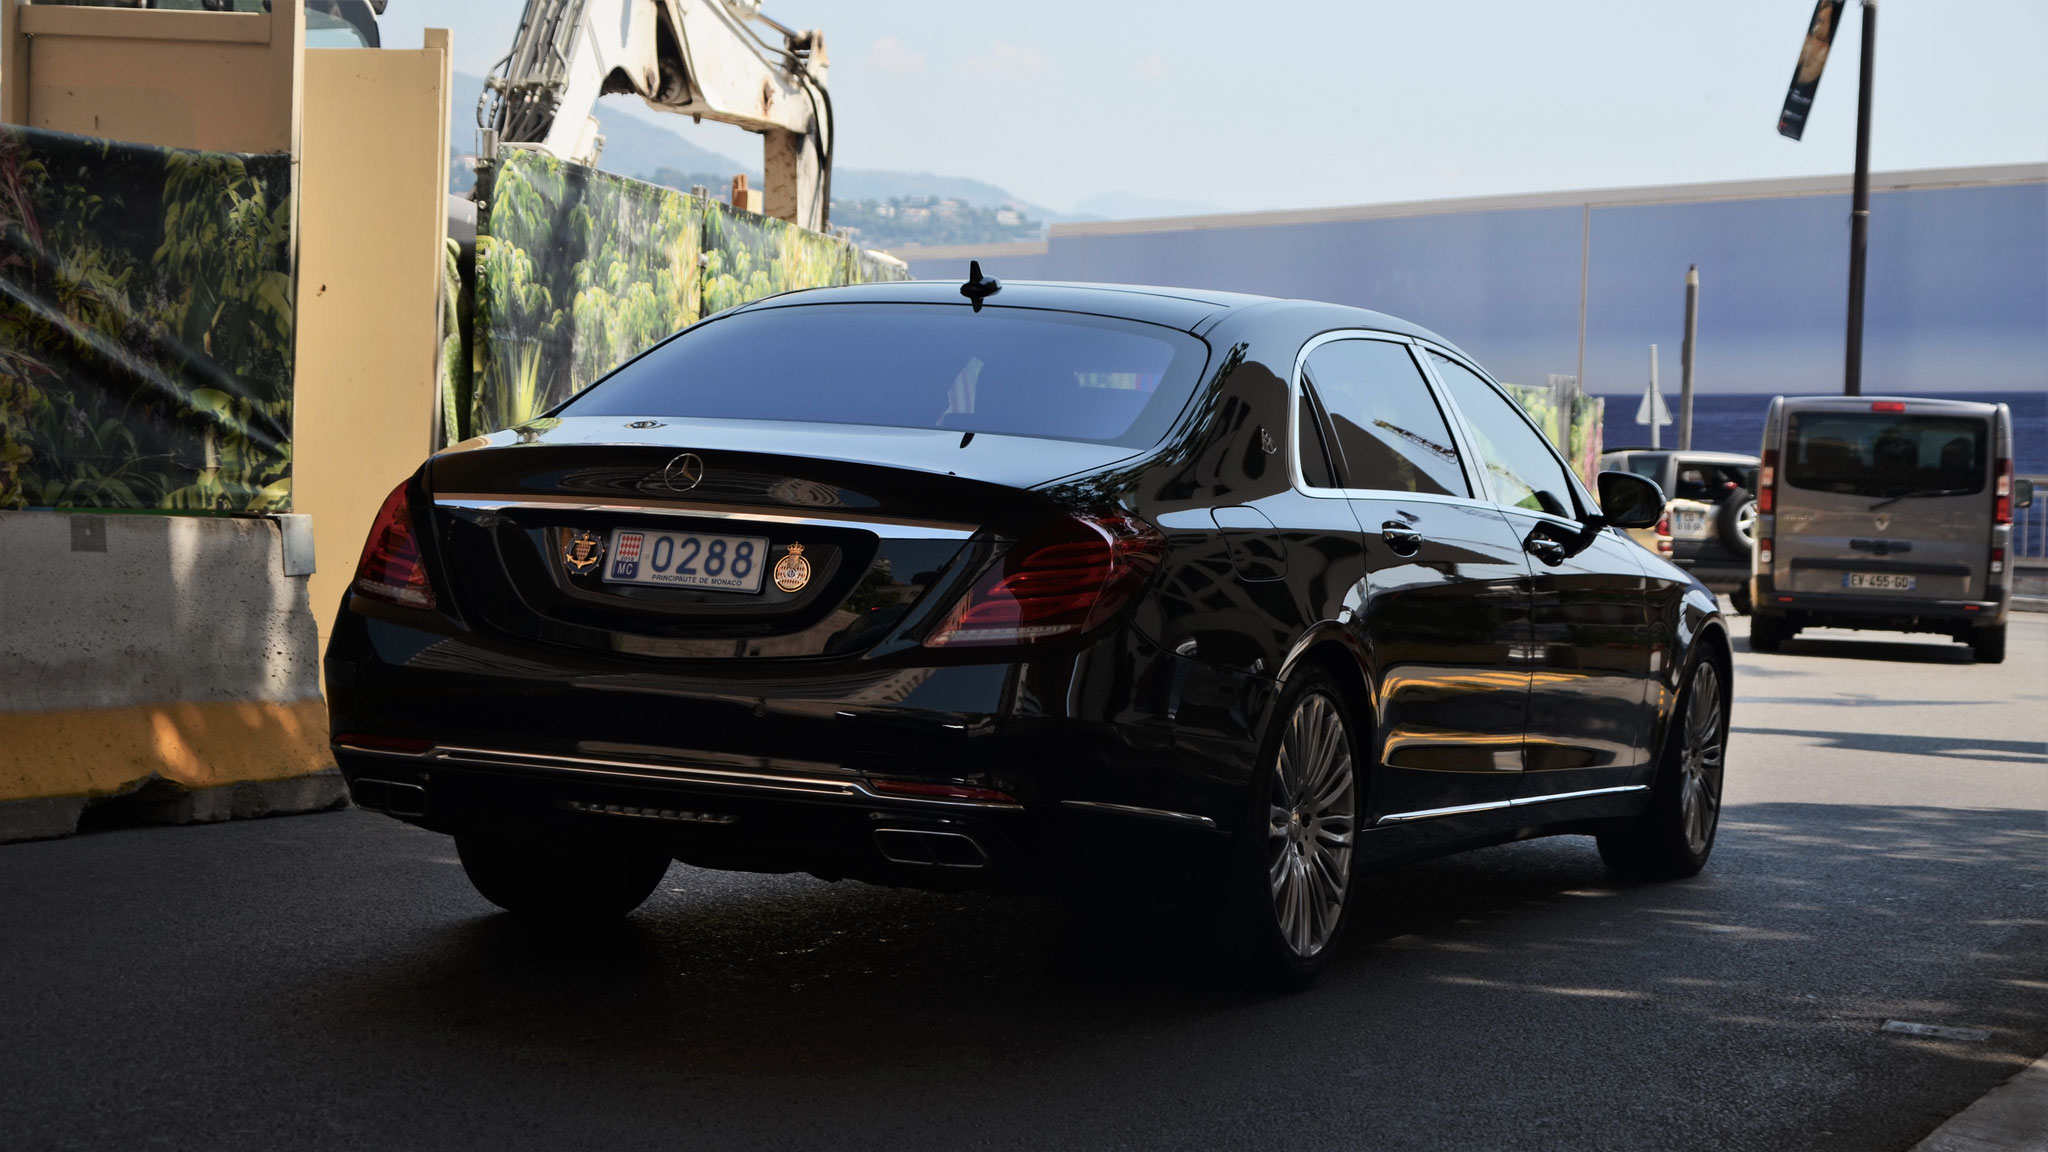 Mercedes Maybach S500 - Q288 (MC)